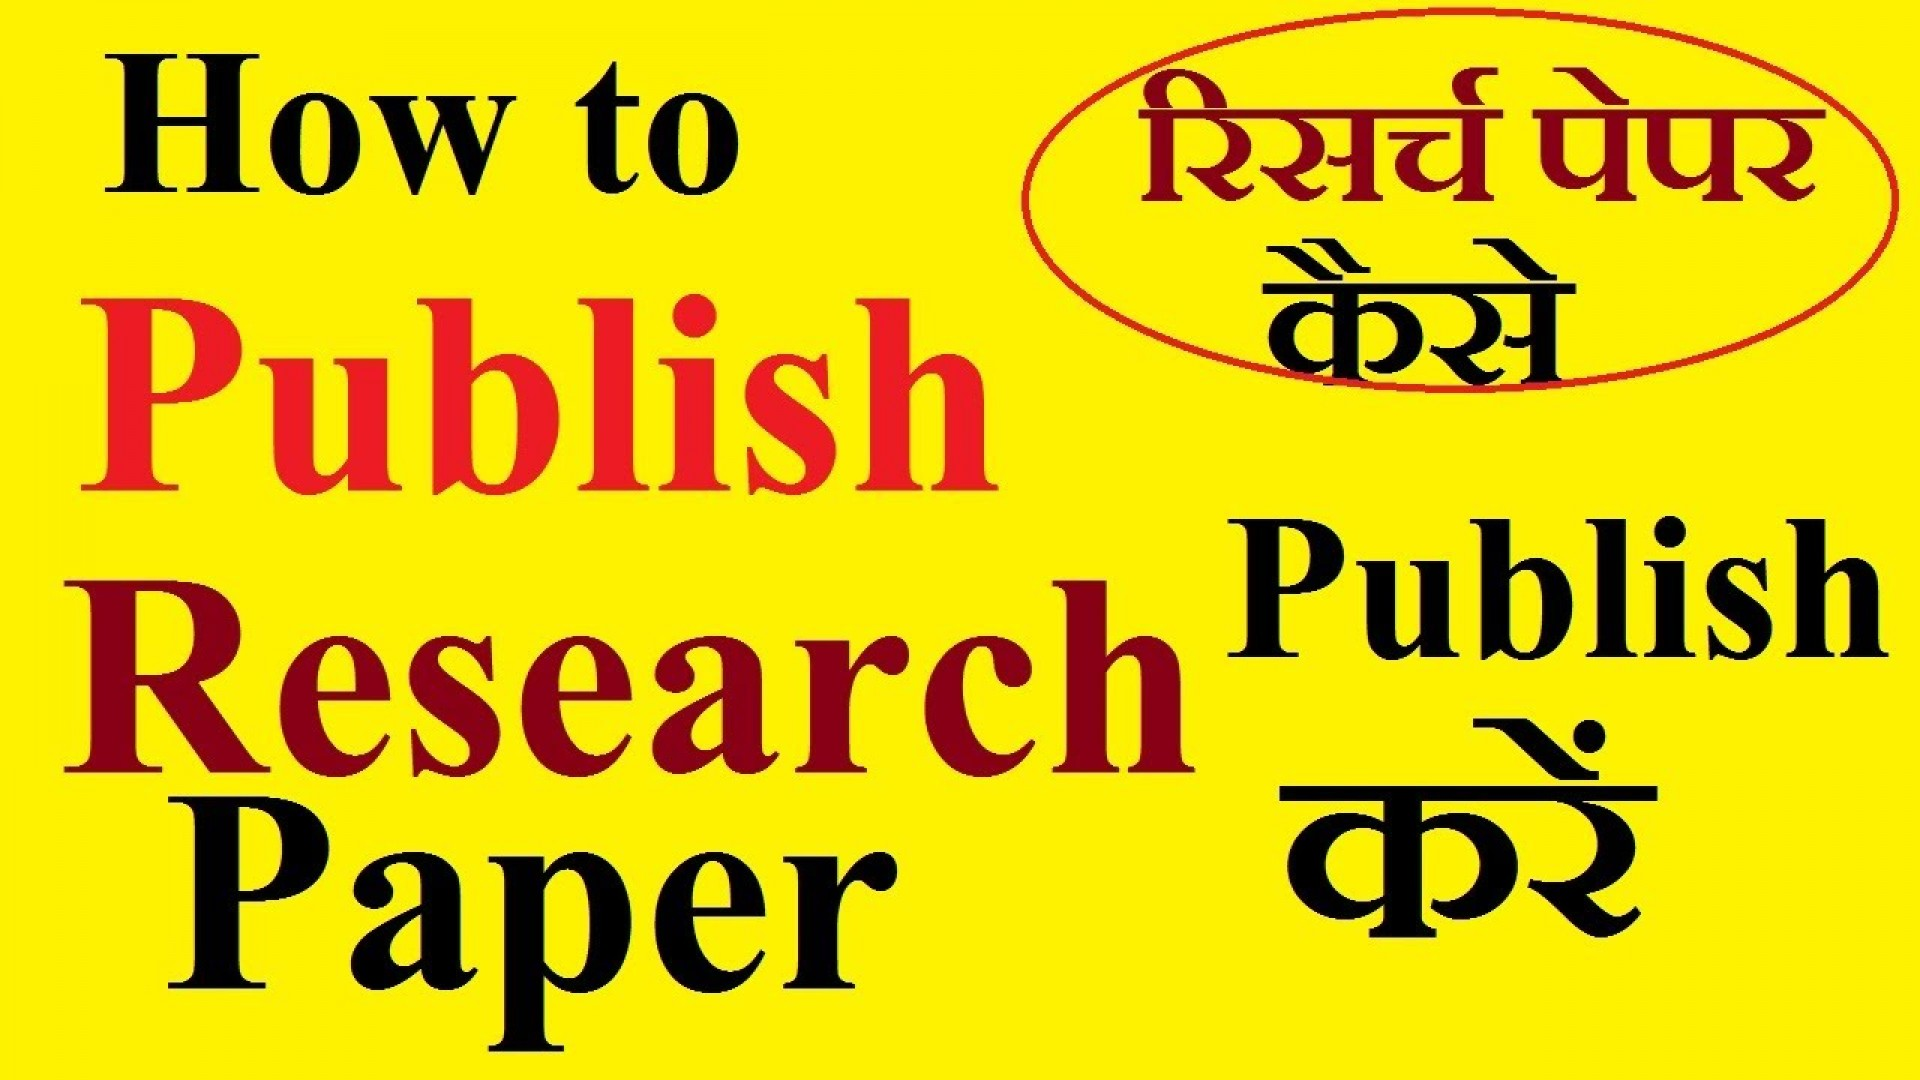 002 Maxresdefault How To Publish Research Frightening Paper In India Ieee On Google Scholar 1920